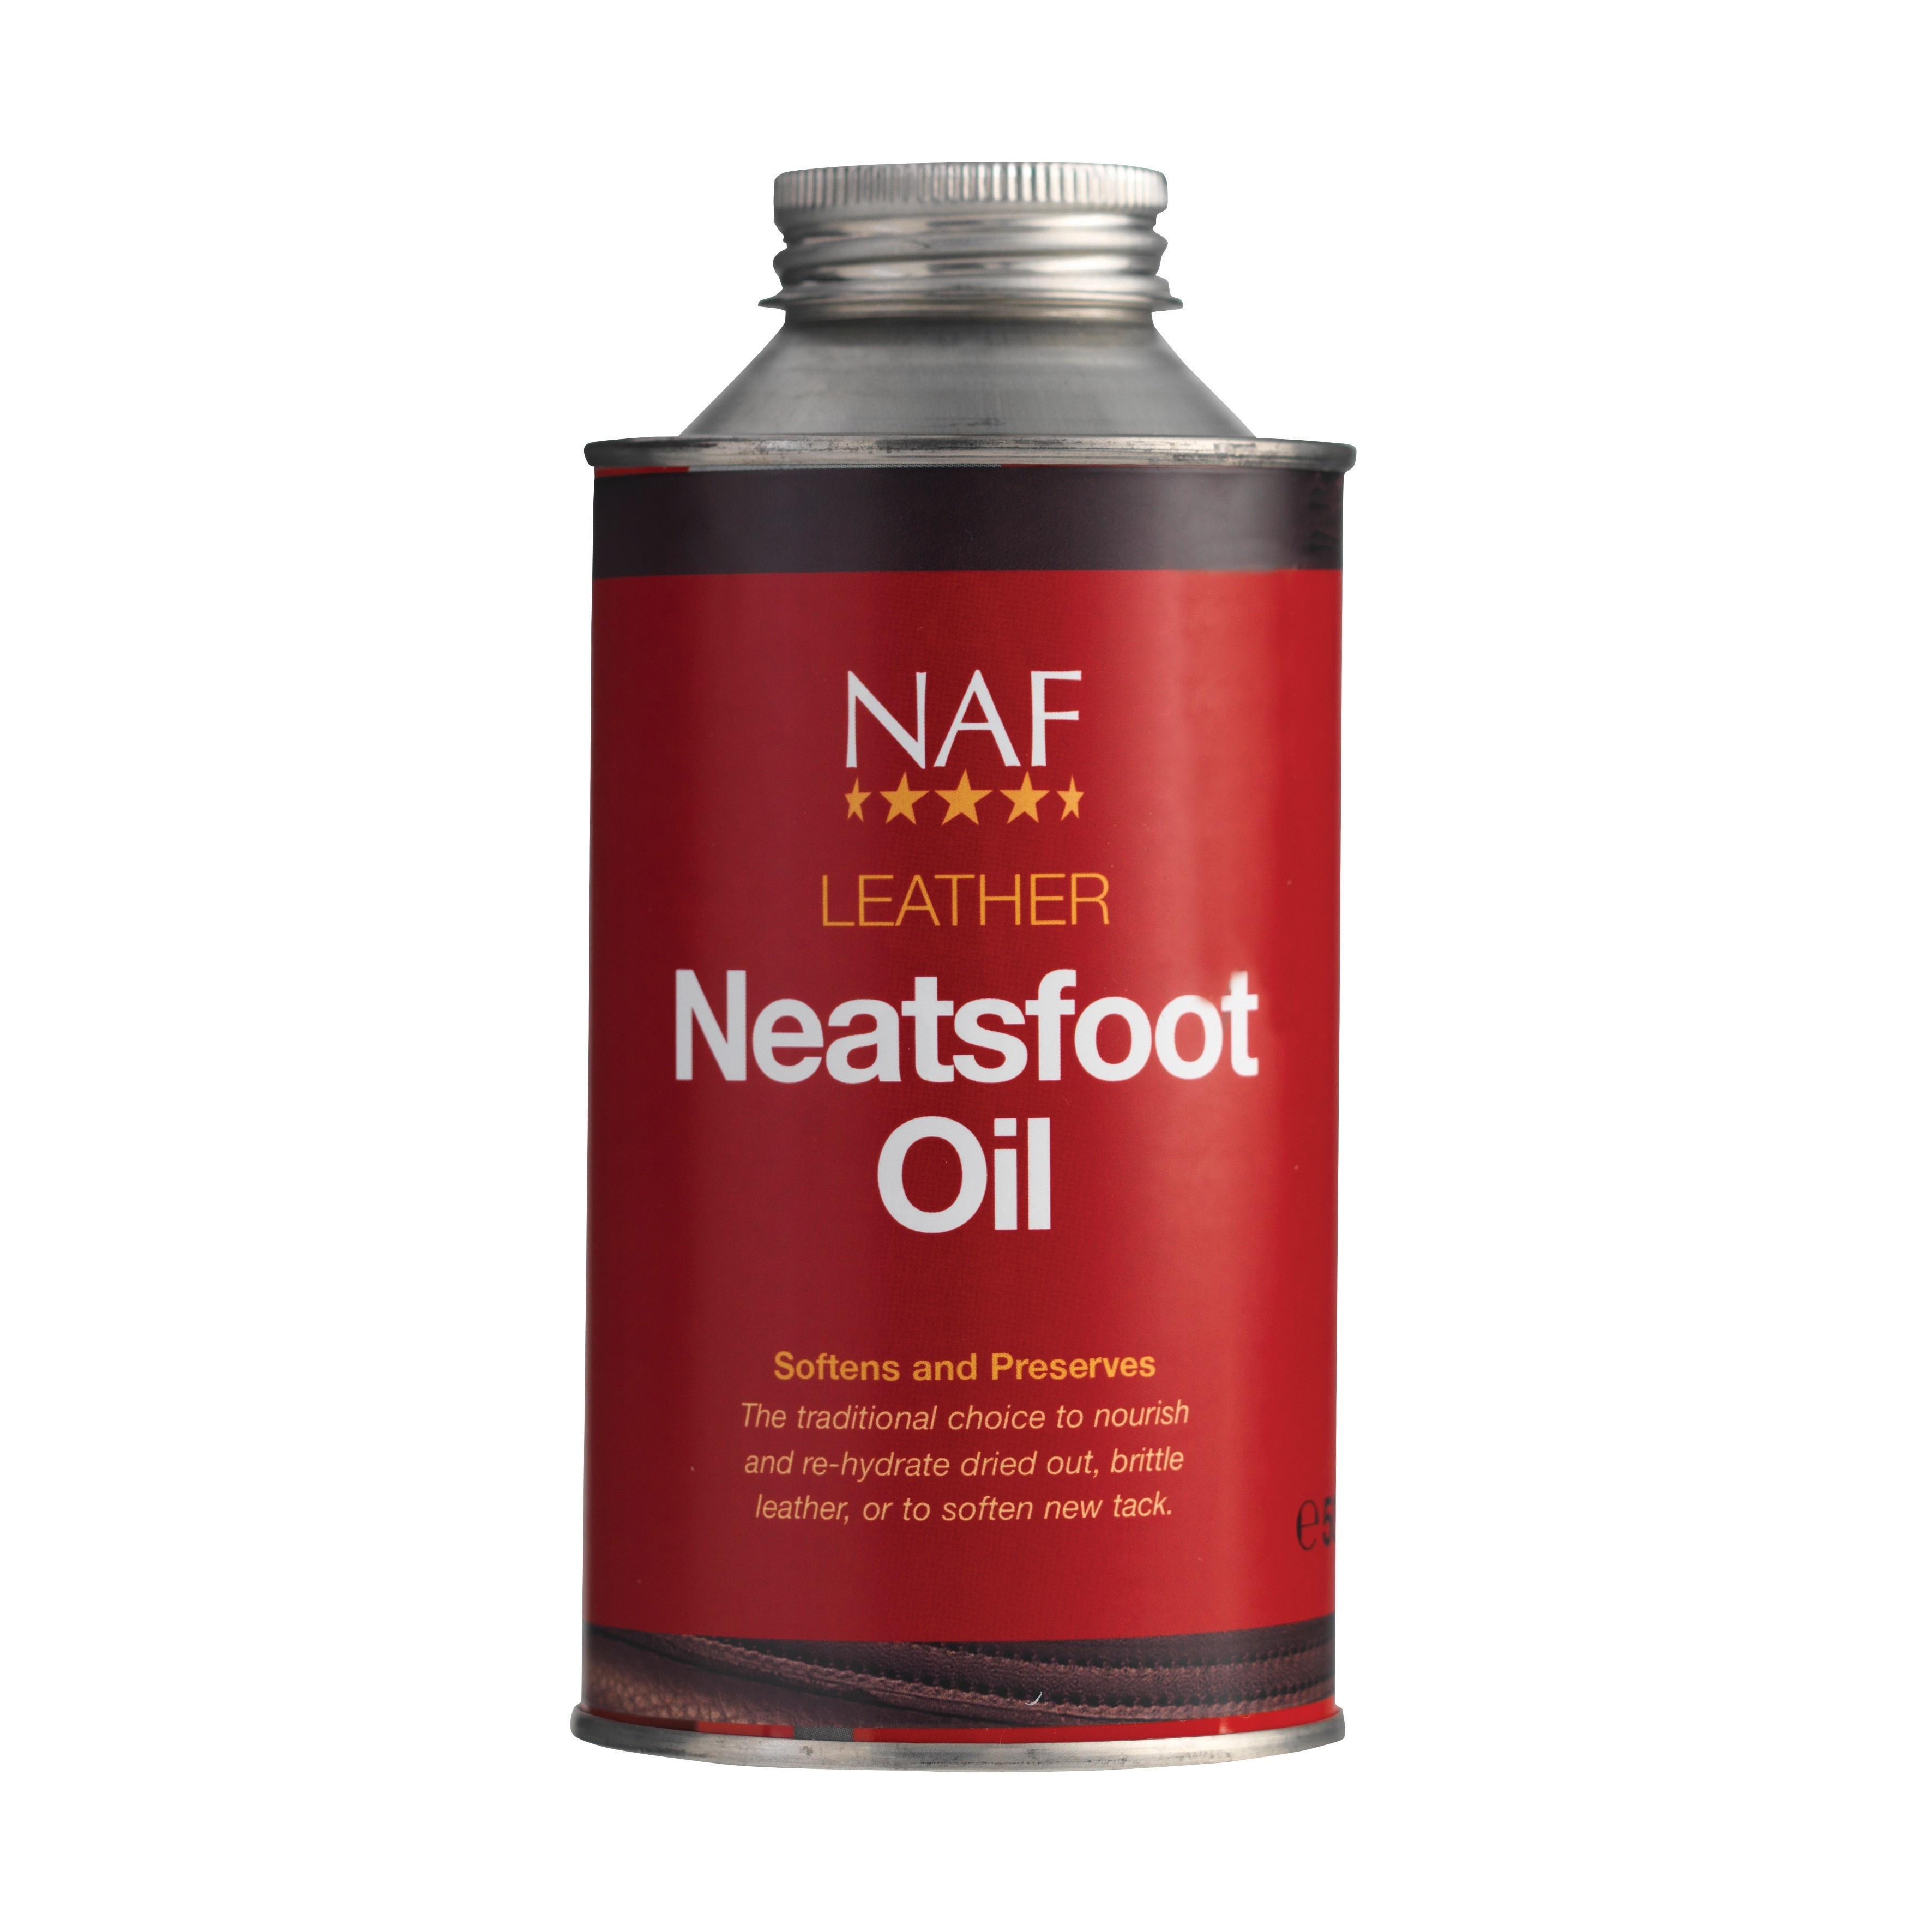 NAF Leather Neatsfoot Oil  - Thomas Irving's equestrian and accessories store  NAF Leather Neatsfoot Oil